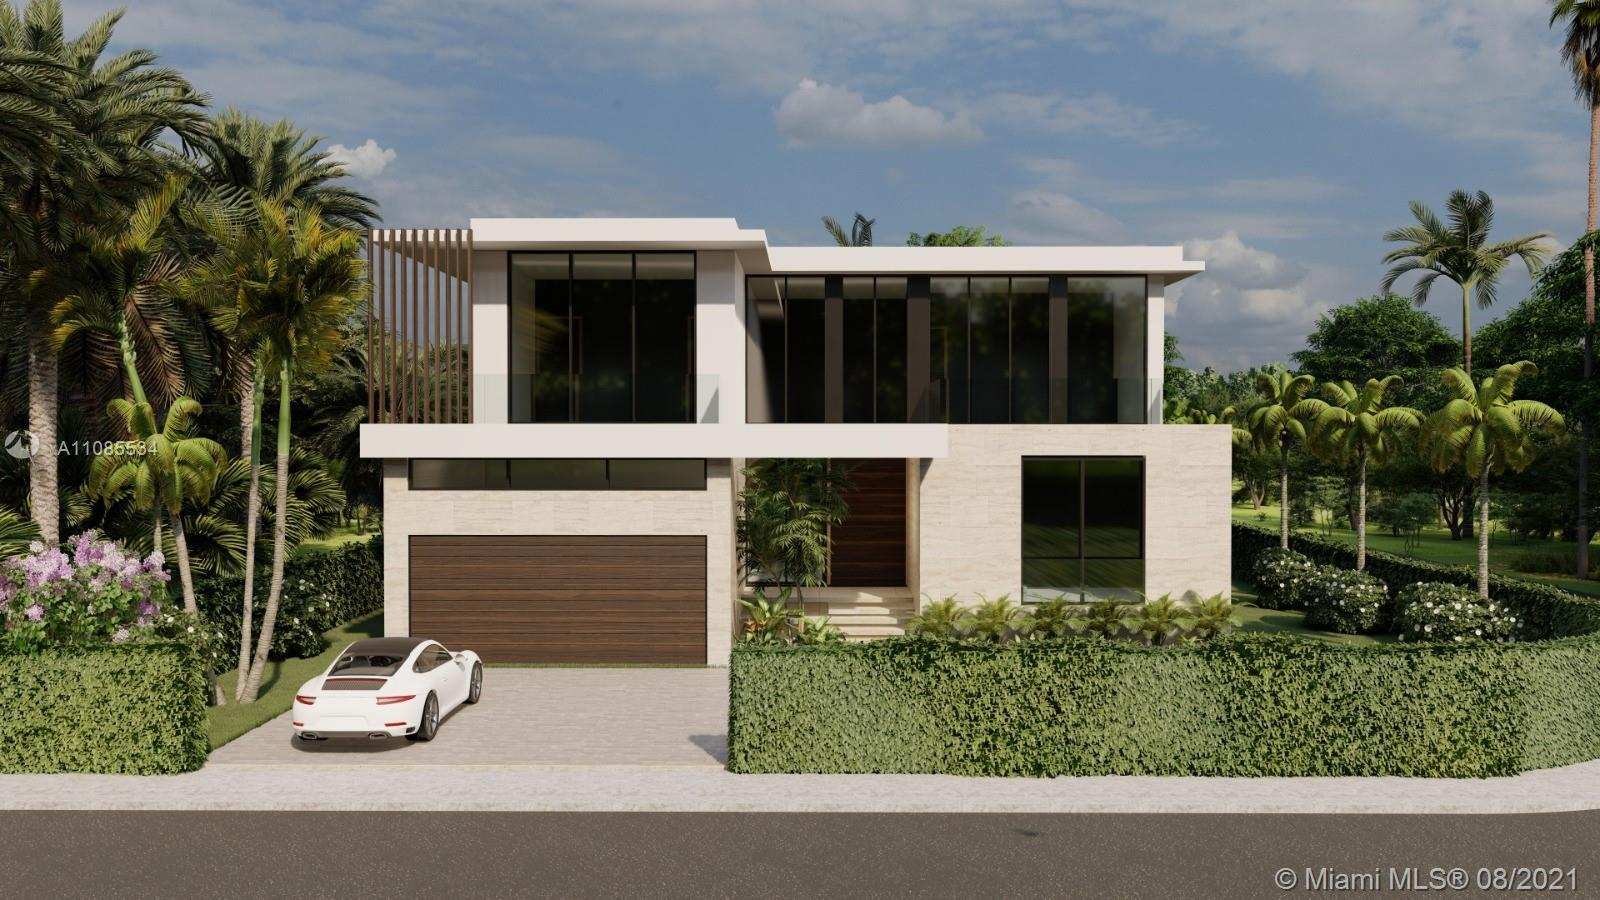 Step inside with me - brand new construction in Surfside. This modern 2-story home sits on a rare ov